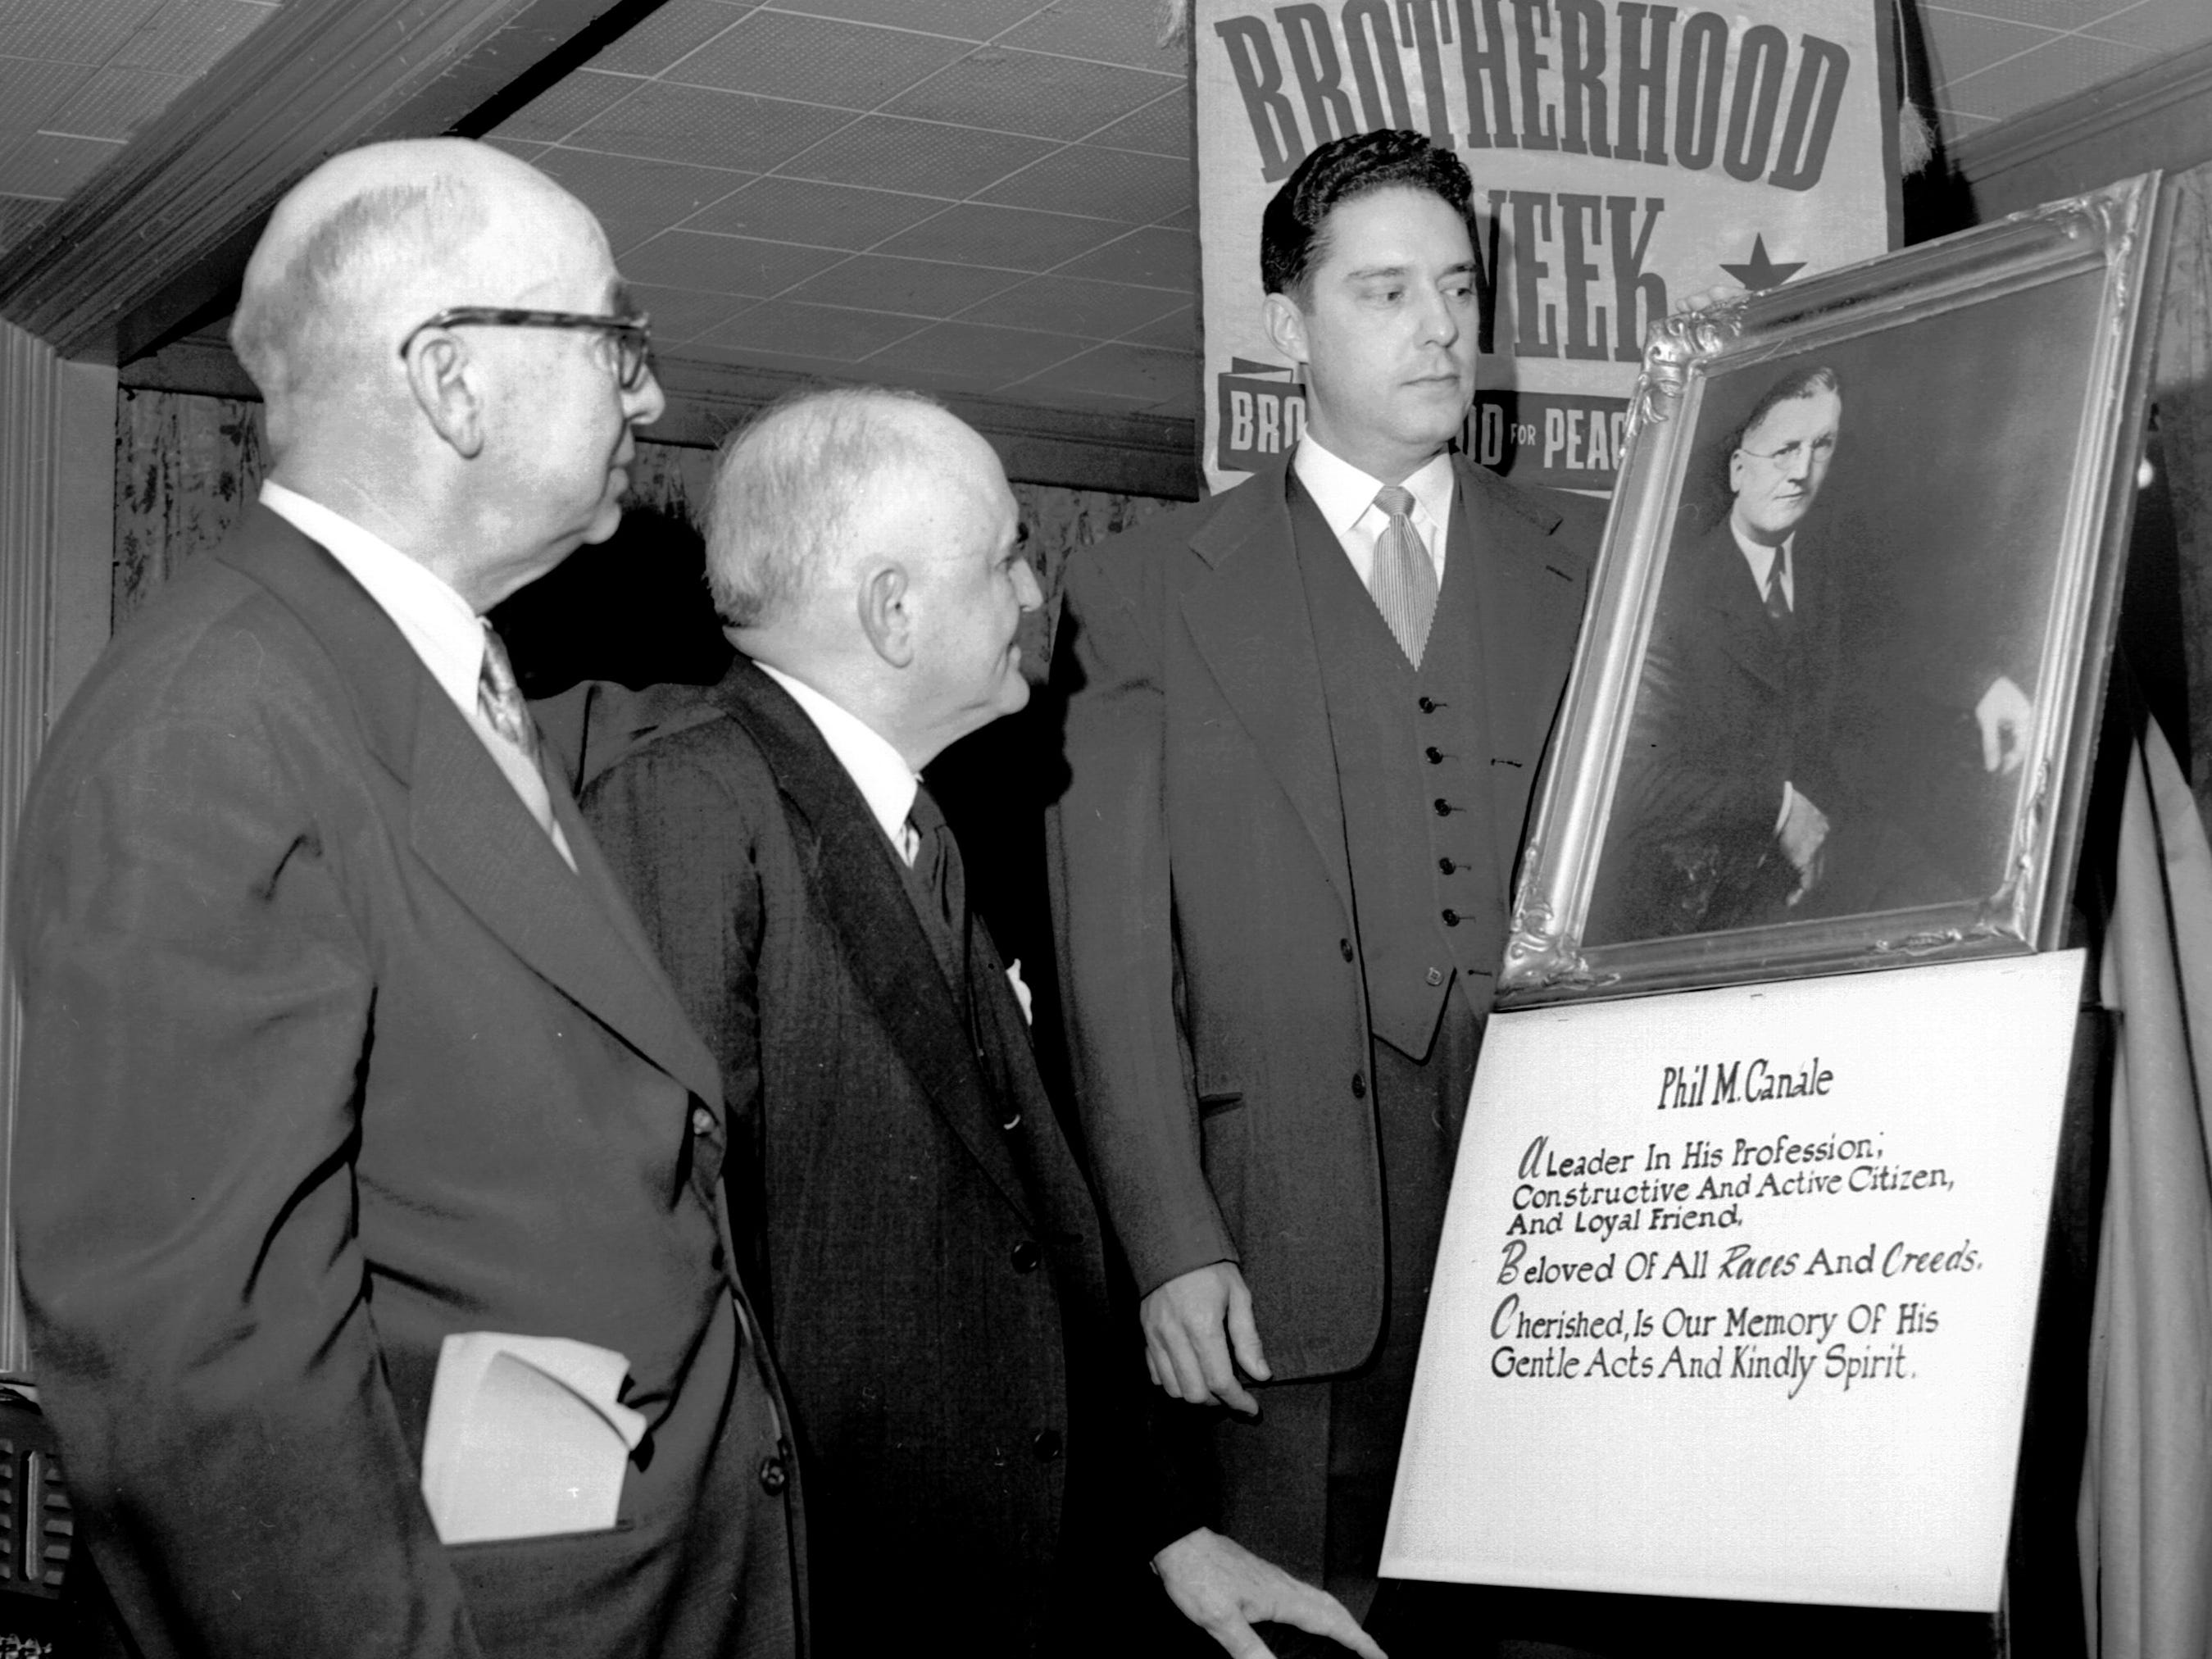 Presentation to his family of a large framed portrait of the late Phil M. Canale Sr. highlighted a memorial ceremony at The Peabody Feb. 16, 1952 by Shrine Luncheon Club honoring the attorney and civic leader. Walter Chandler, center, Shriner and former mayor, presented the portrait, which was accepted for his family by Phil M. Canale Jr., right. W. B. Hill, left, luncheon club president, presided at the ceremony.